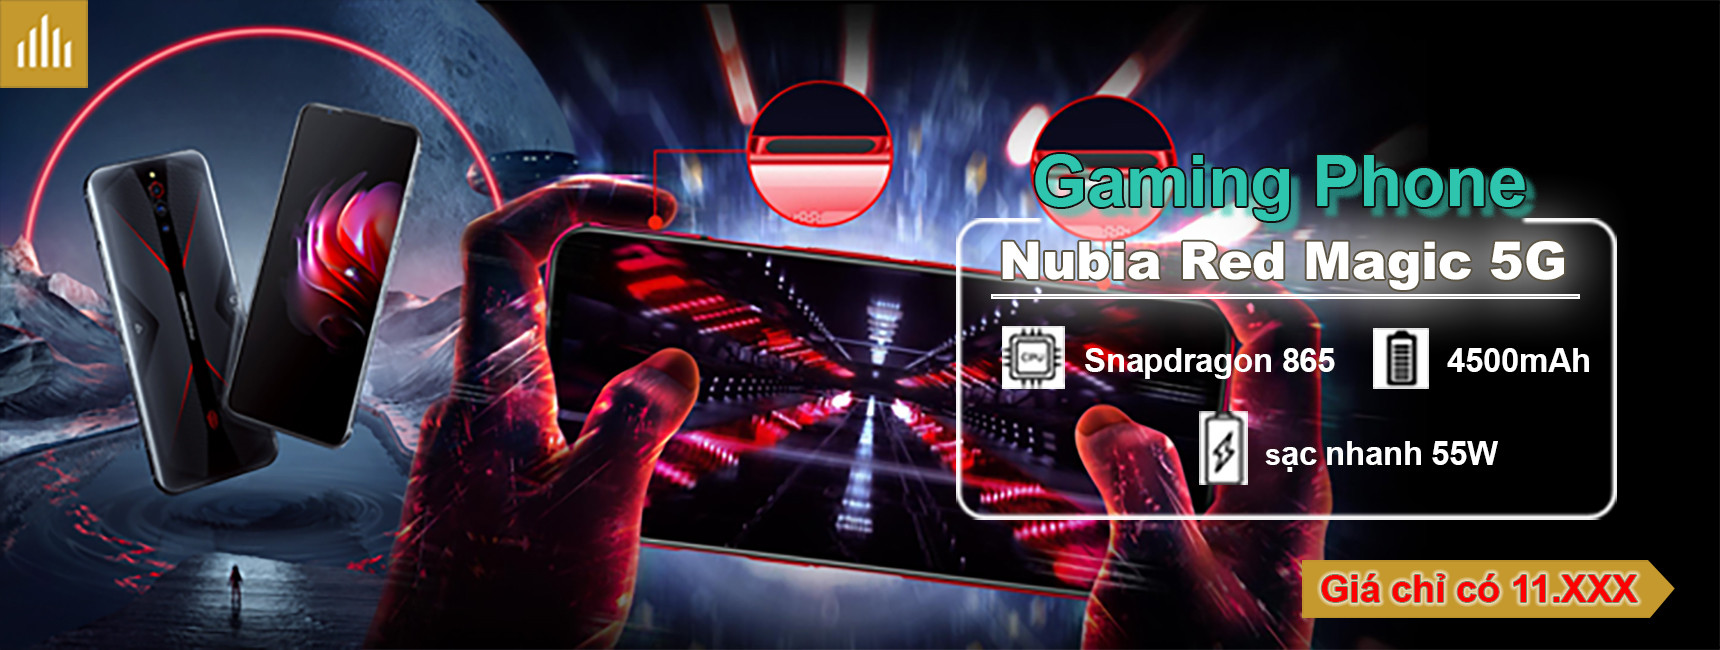 Nubia Red Magic 5G (Gaming Phone)